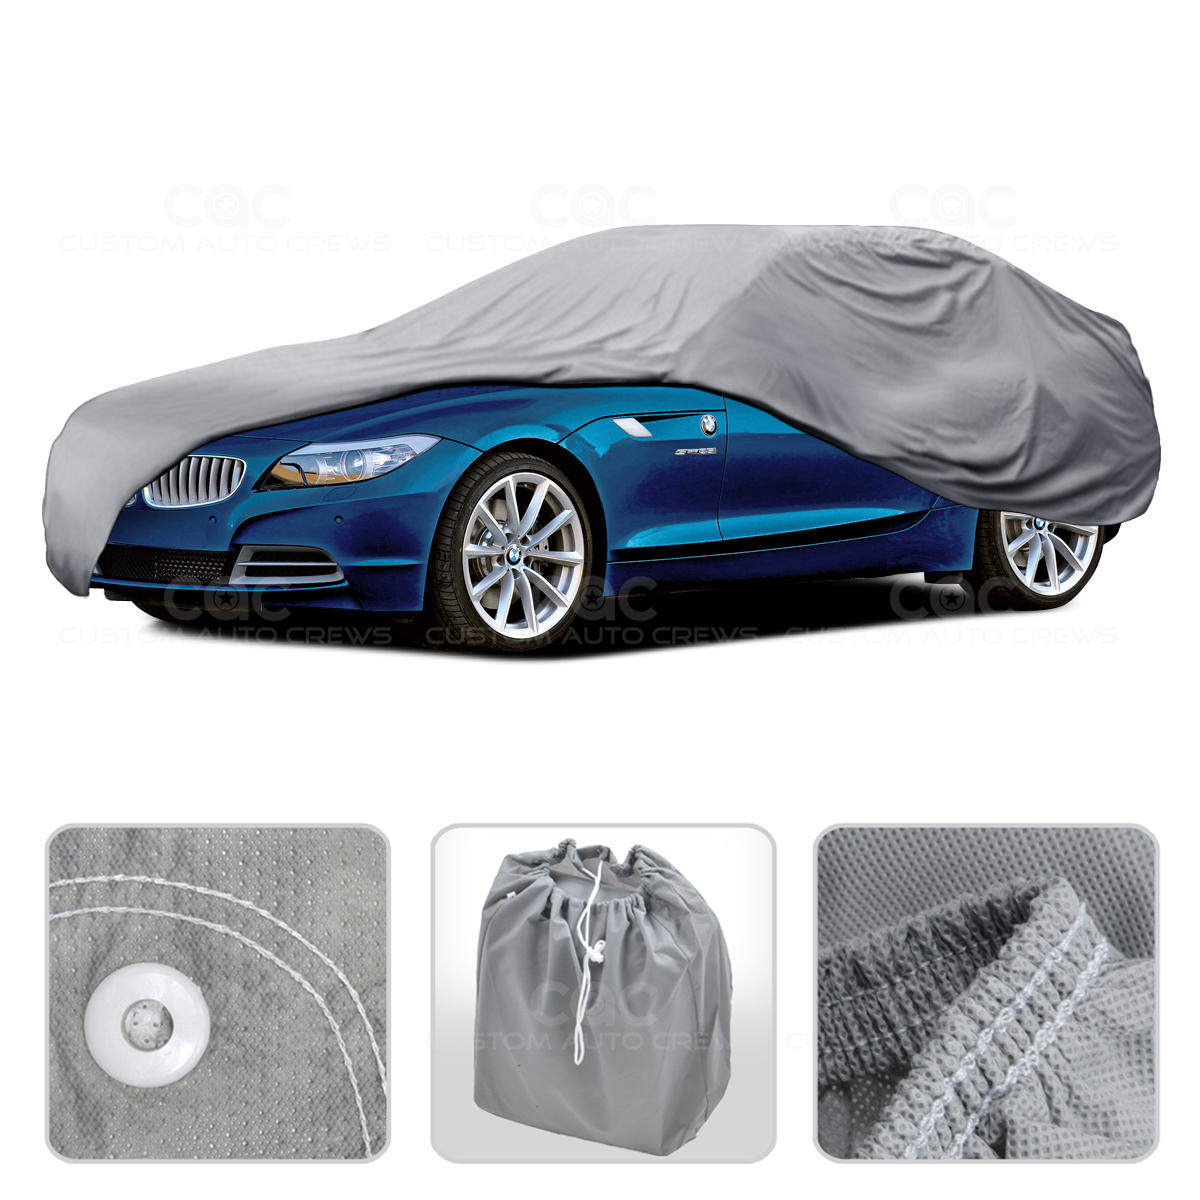 Car Cover For Bmw Z1 Z3 Z4 Z8 Outdoor Breathable Sun Dust Proof Auto Protection Ebay